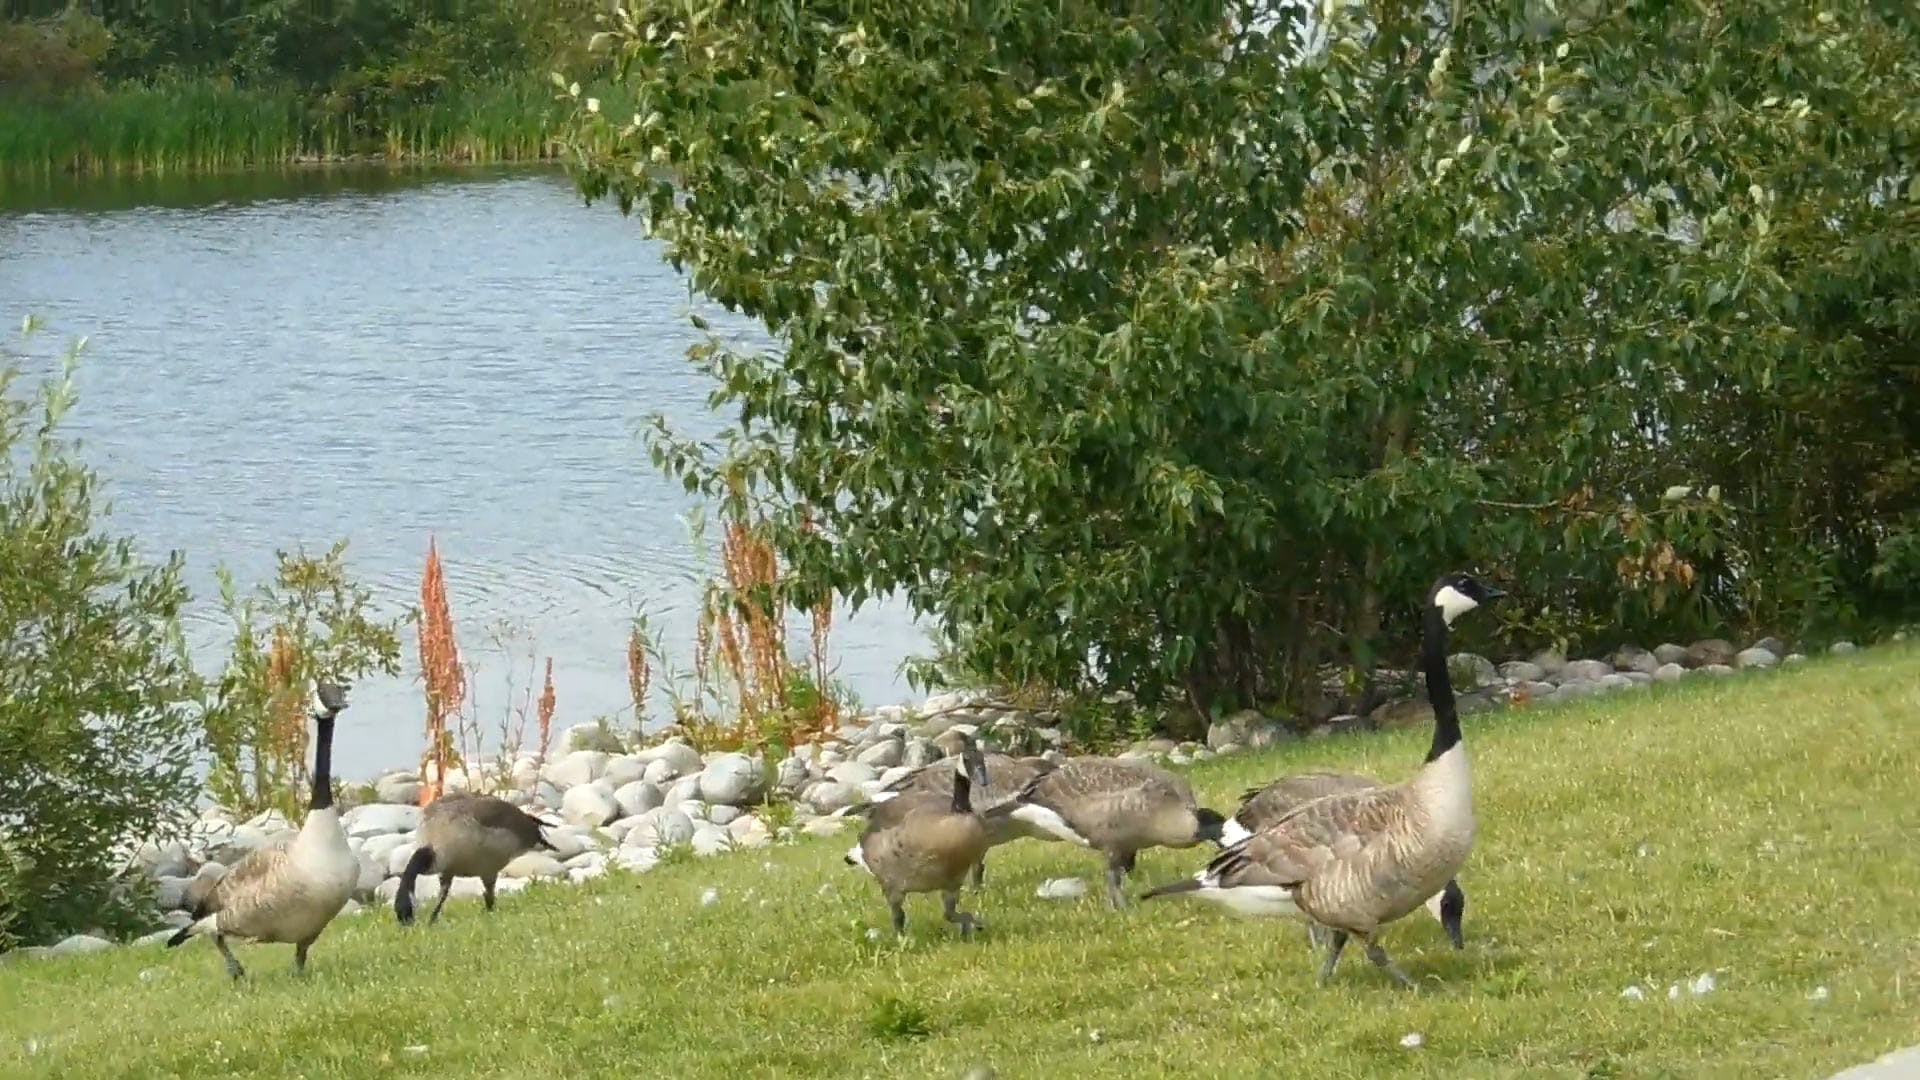 Video of Geese On Grass